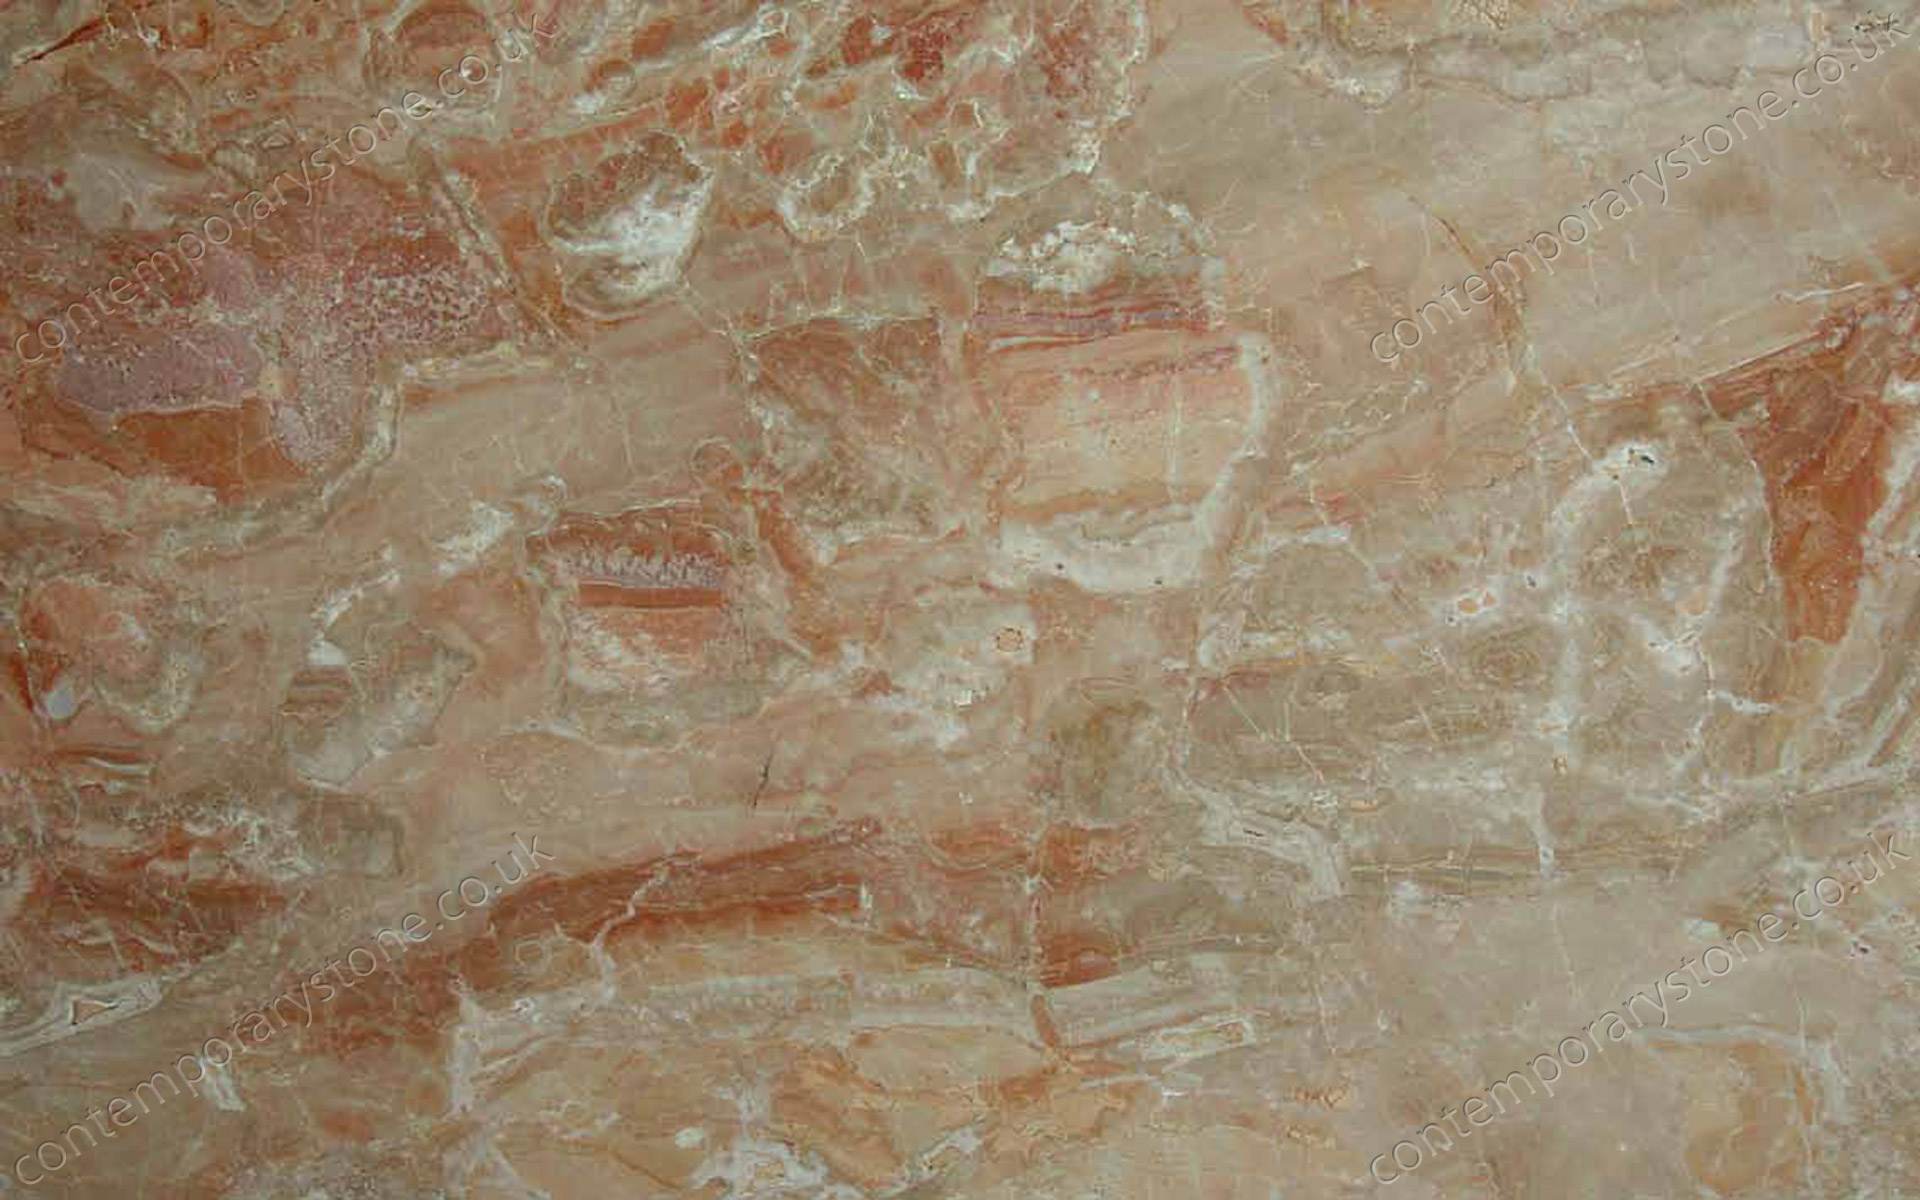 Breccia Damascata marble close-up